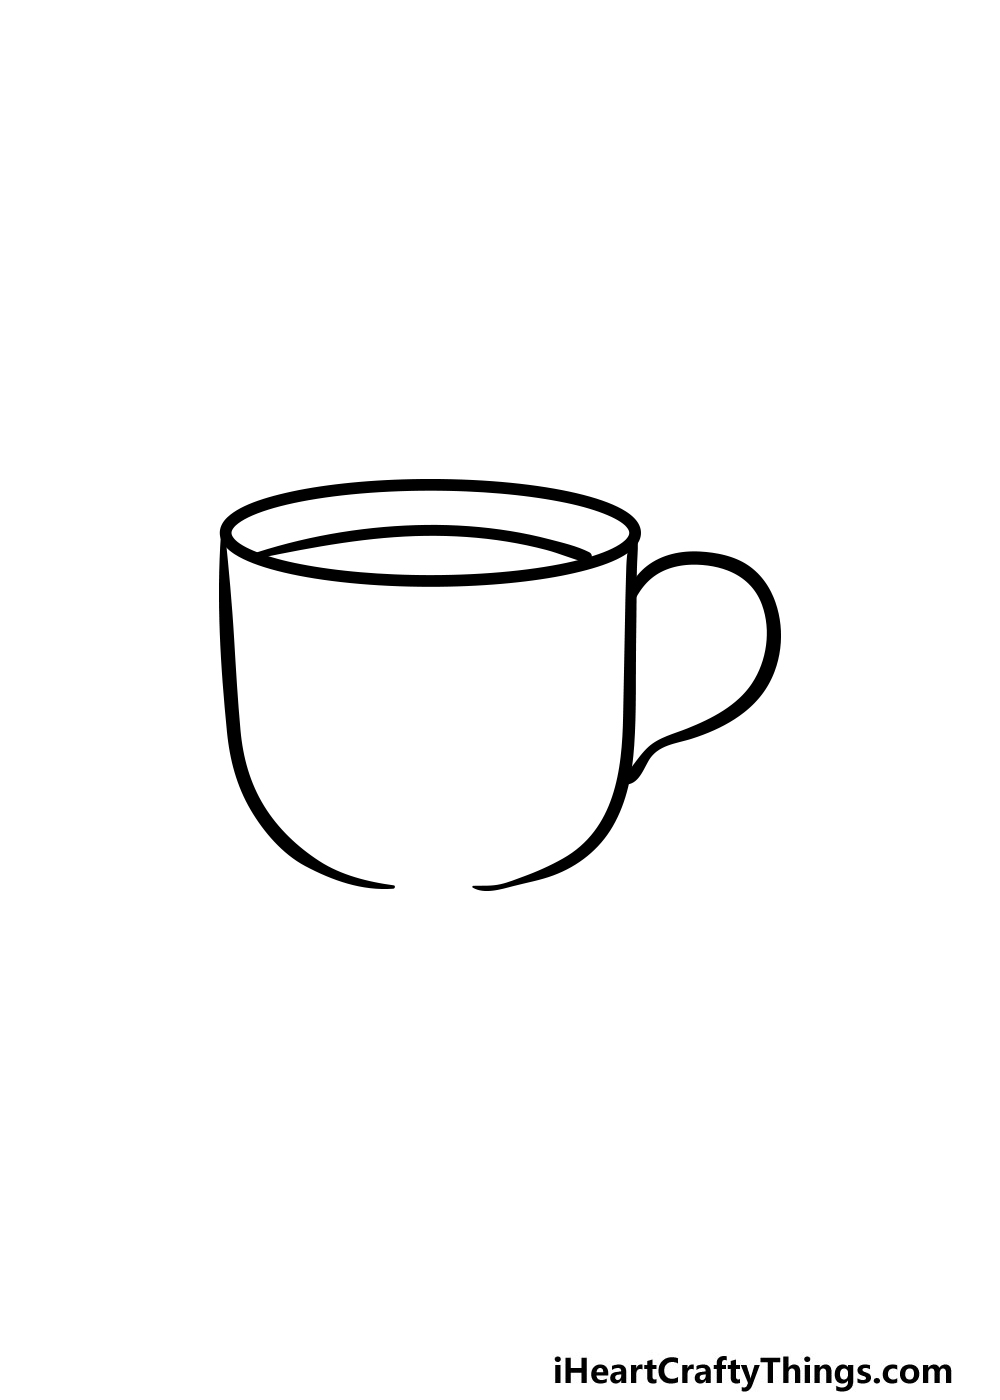 drawing a cup step 4